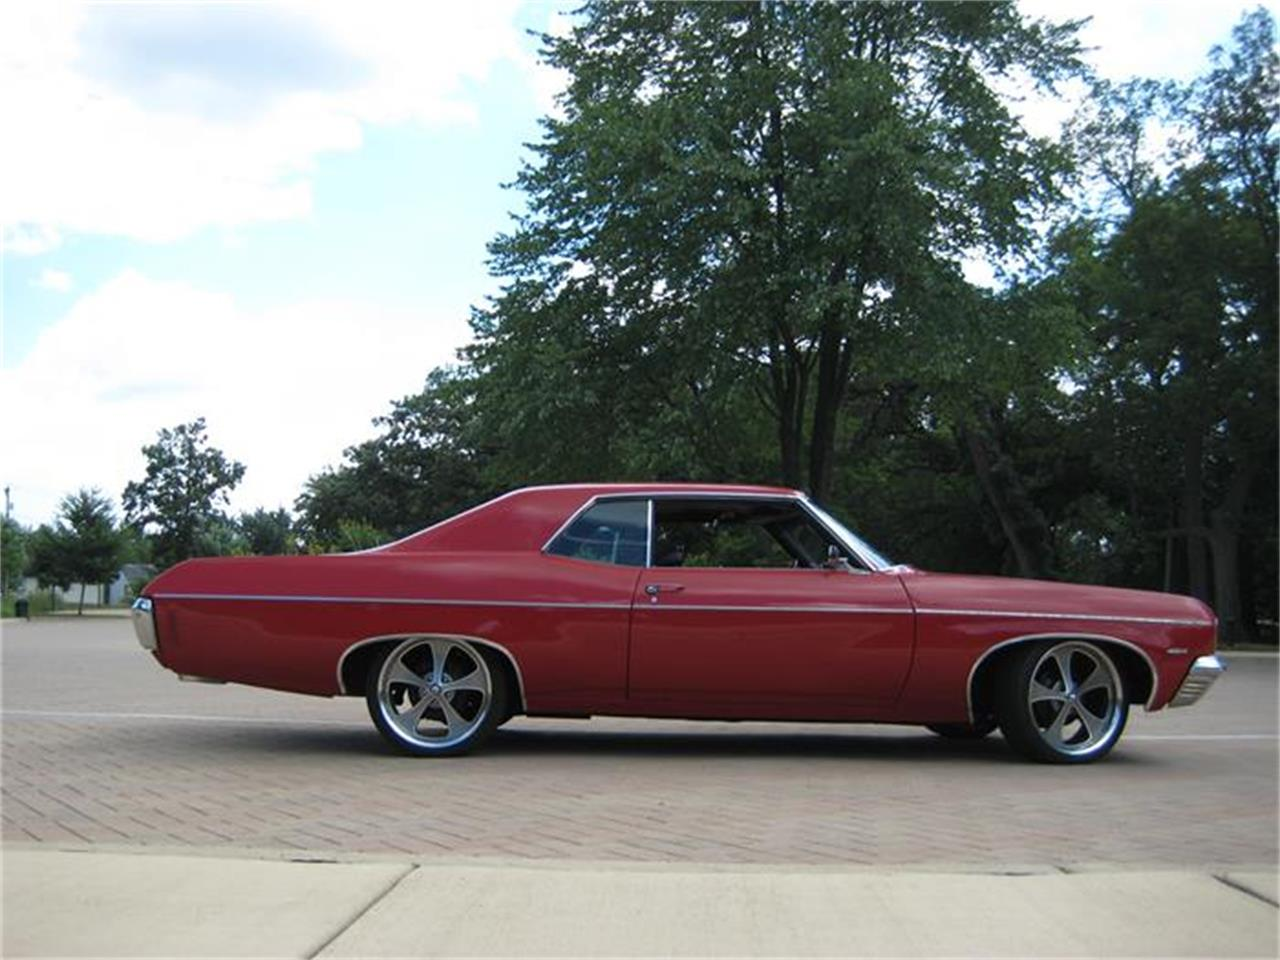 Large Picture of Classic '70 Chevrolet Impala located in Geneva Illinois - $22,995.00 Offered by Classic Auto Haus - F45R